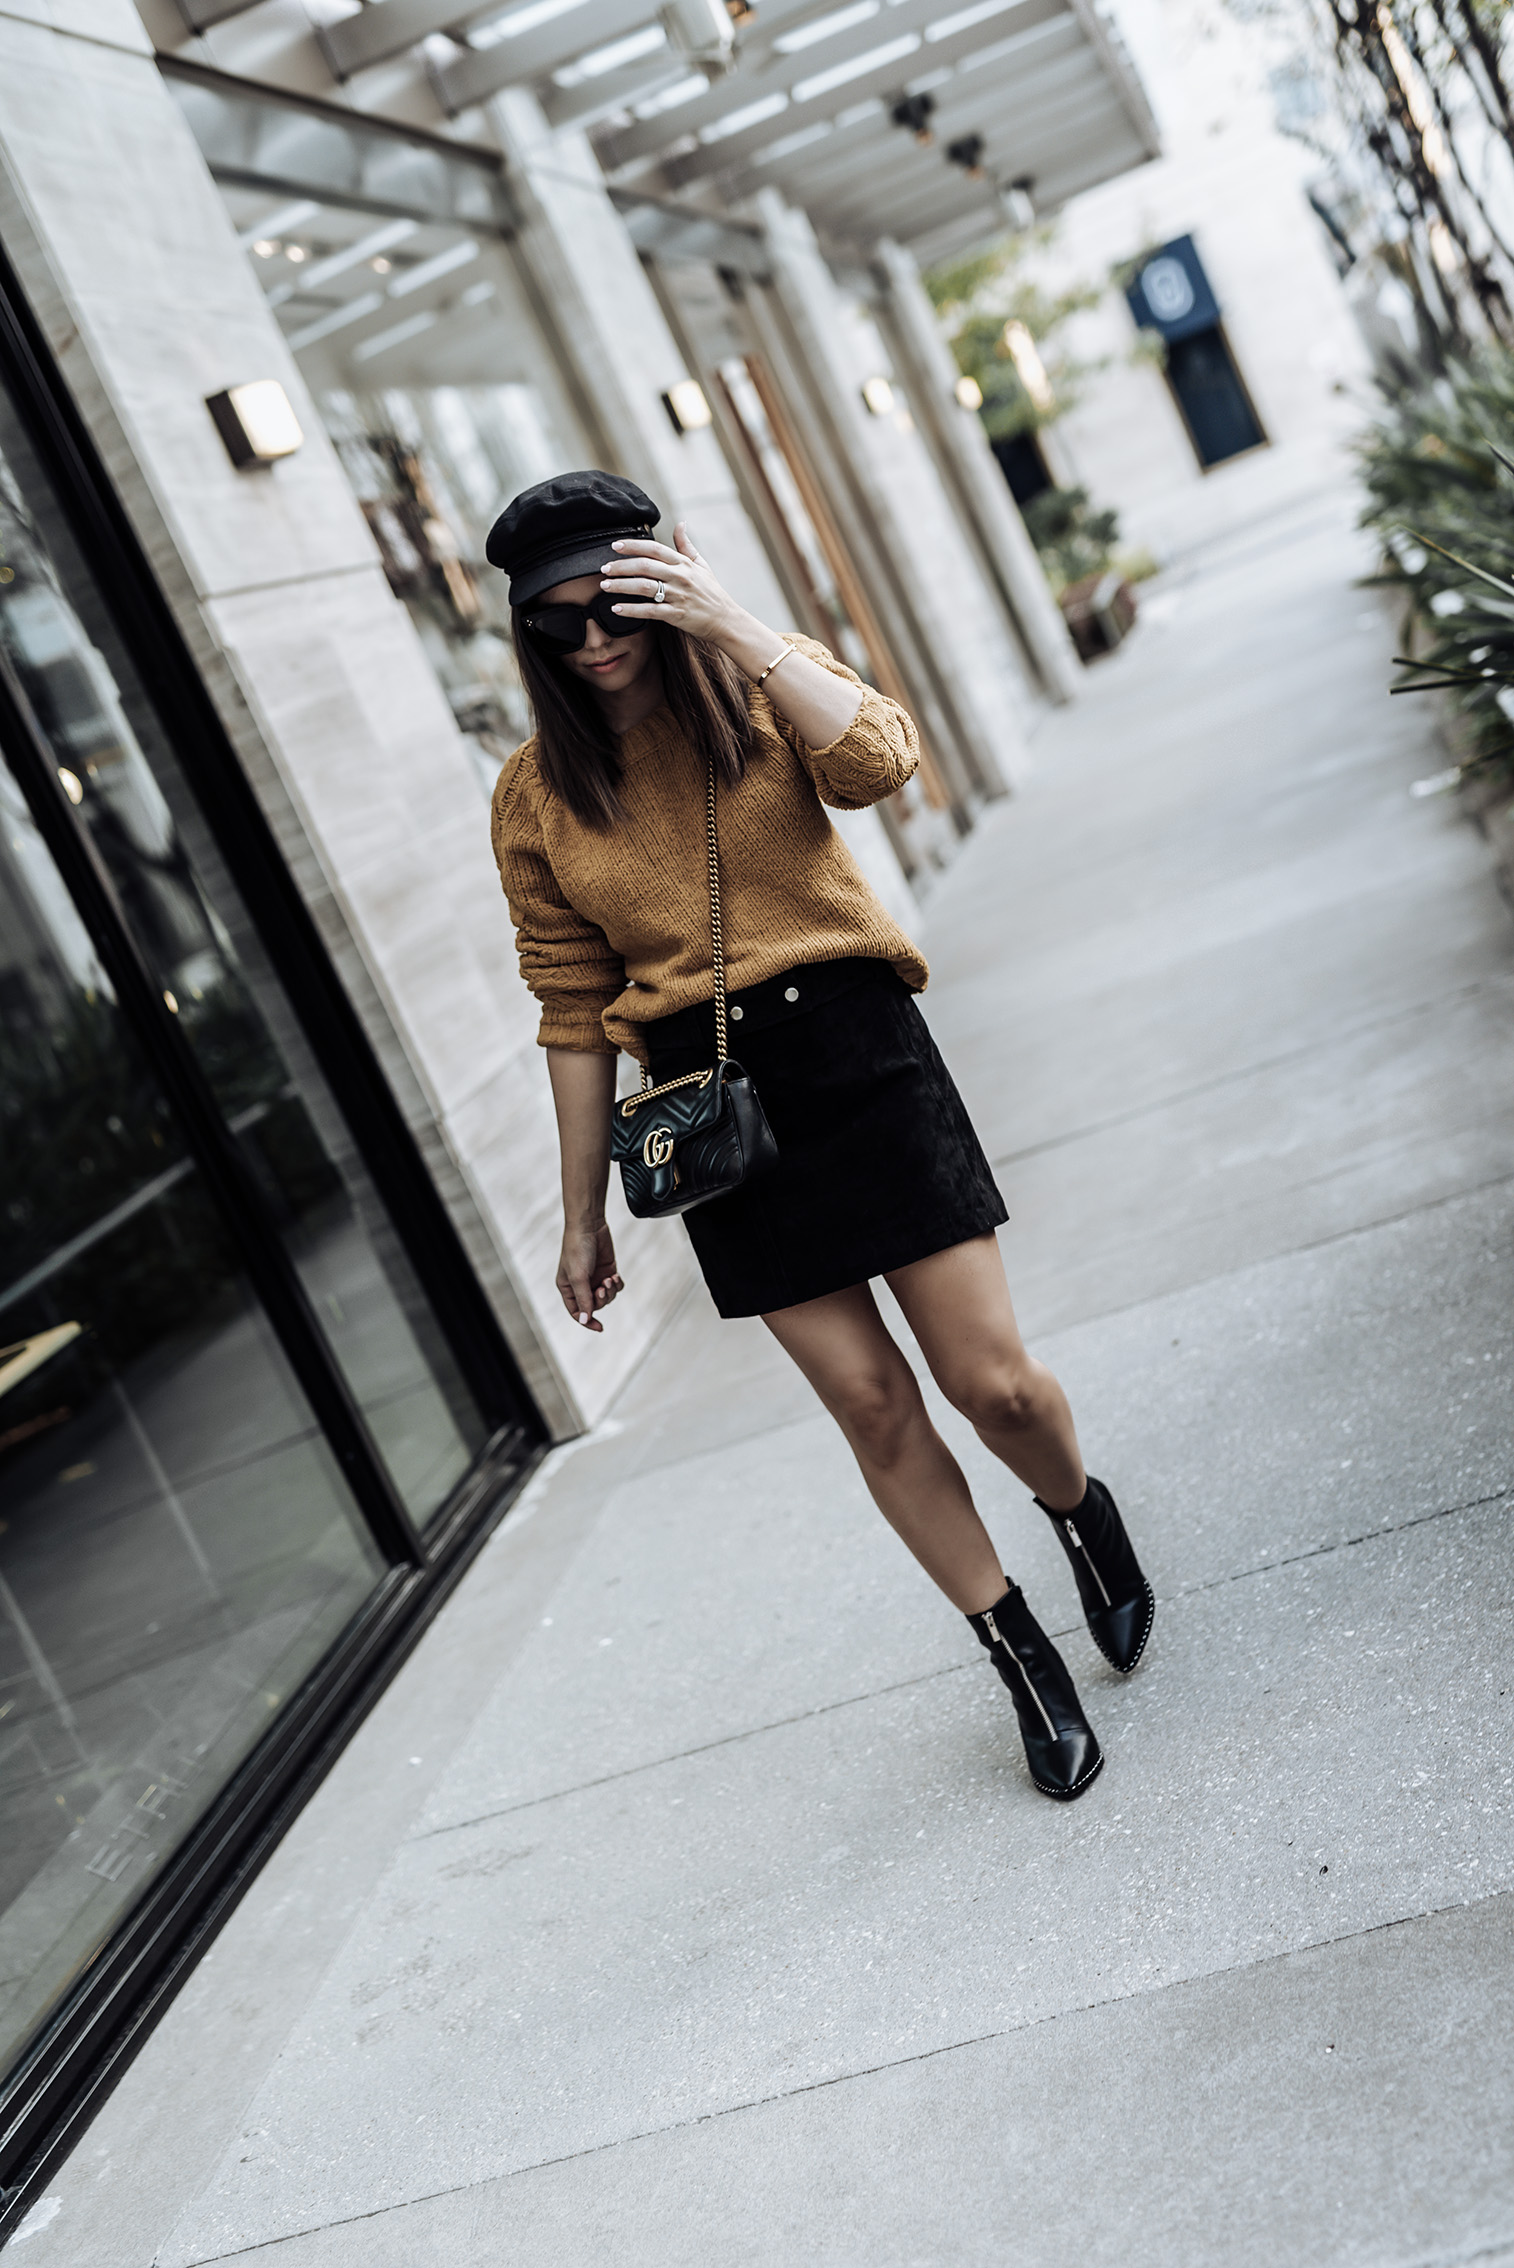   Fall uniform  ASOS only cable knit sweater   ASOS Ellison zip booties   Suede mini skirt (ZARA, similar here)   Streetstyle blog   Paperboy hat   #falloutfits2017 #paperboyhat #sweateroutfits #streetstyle